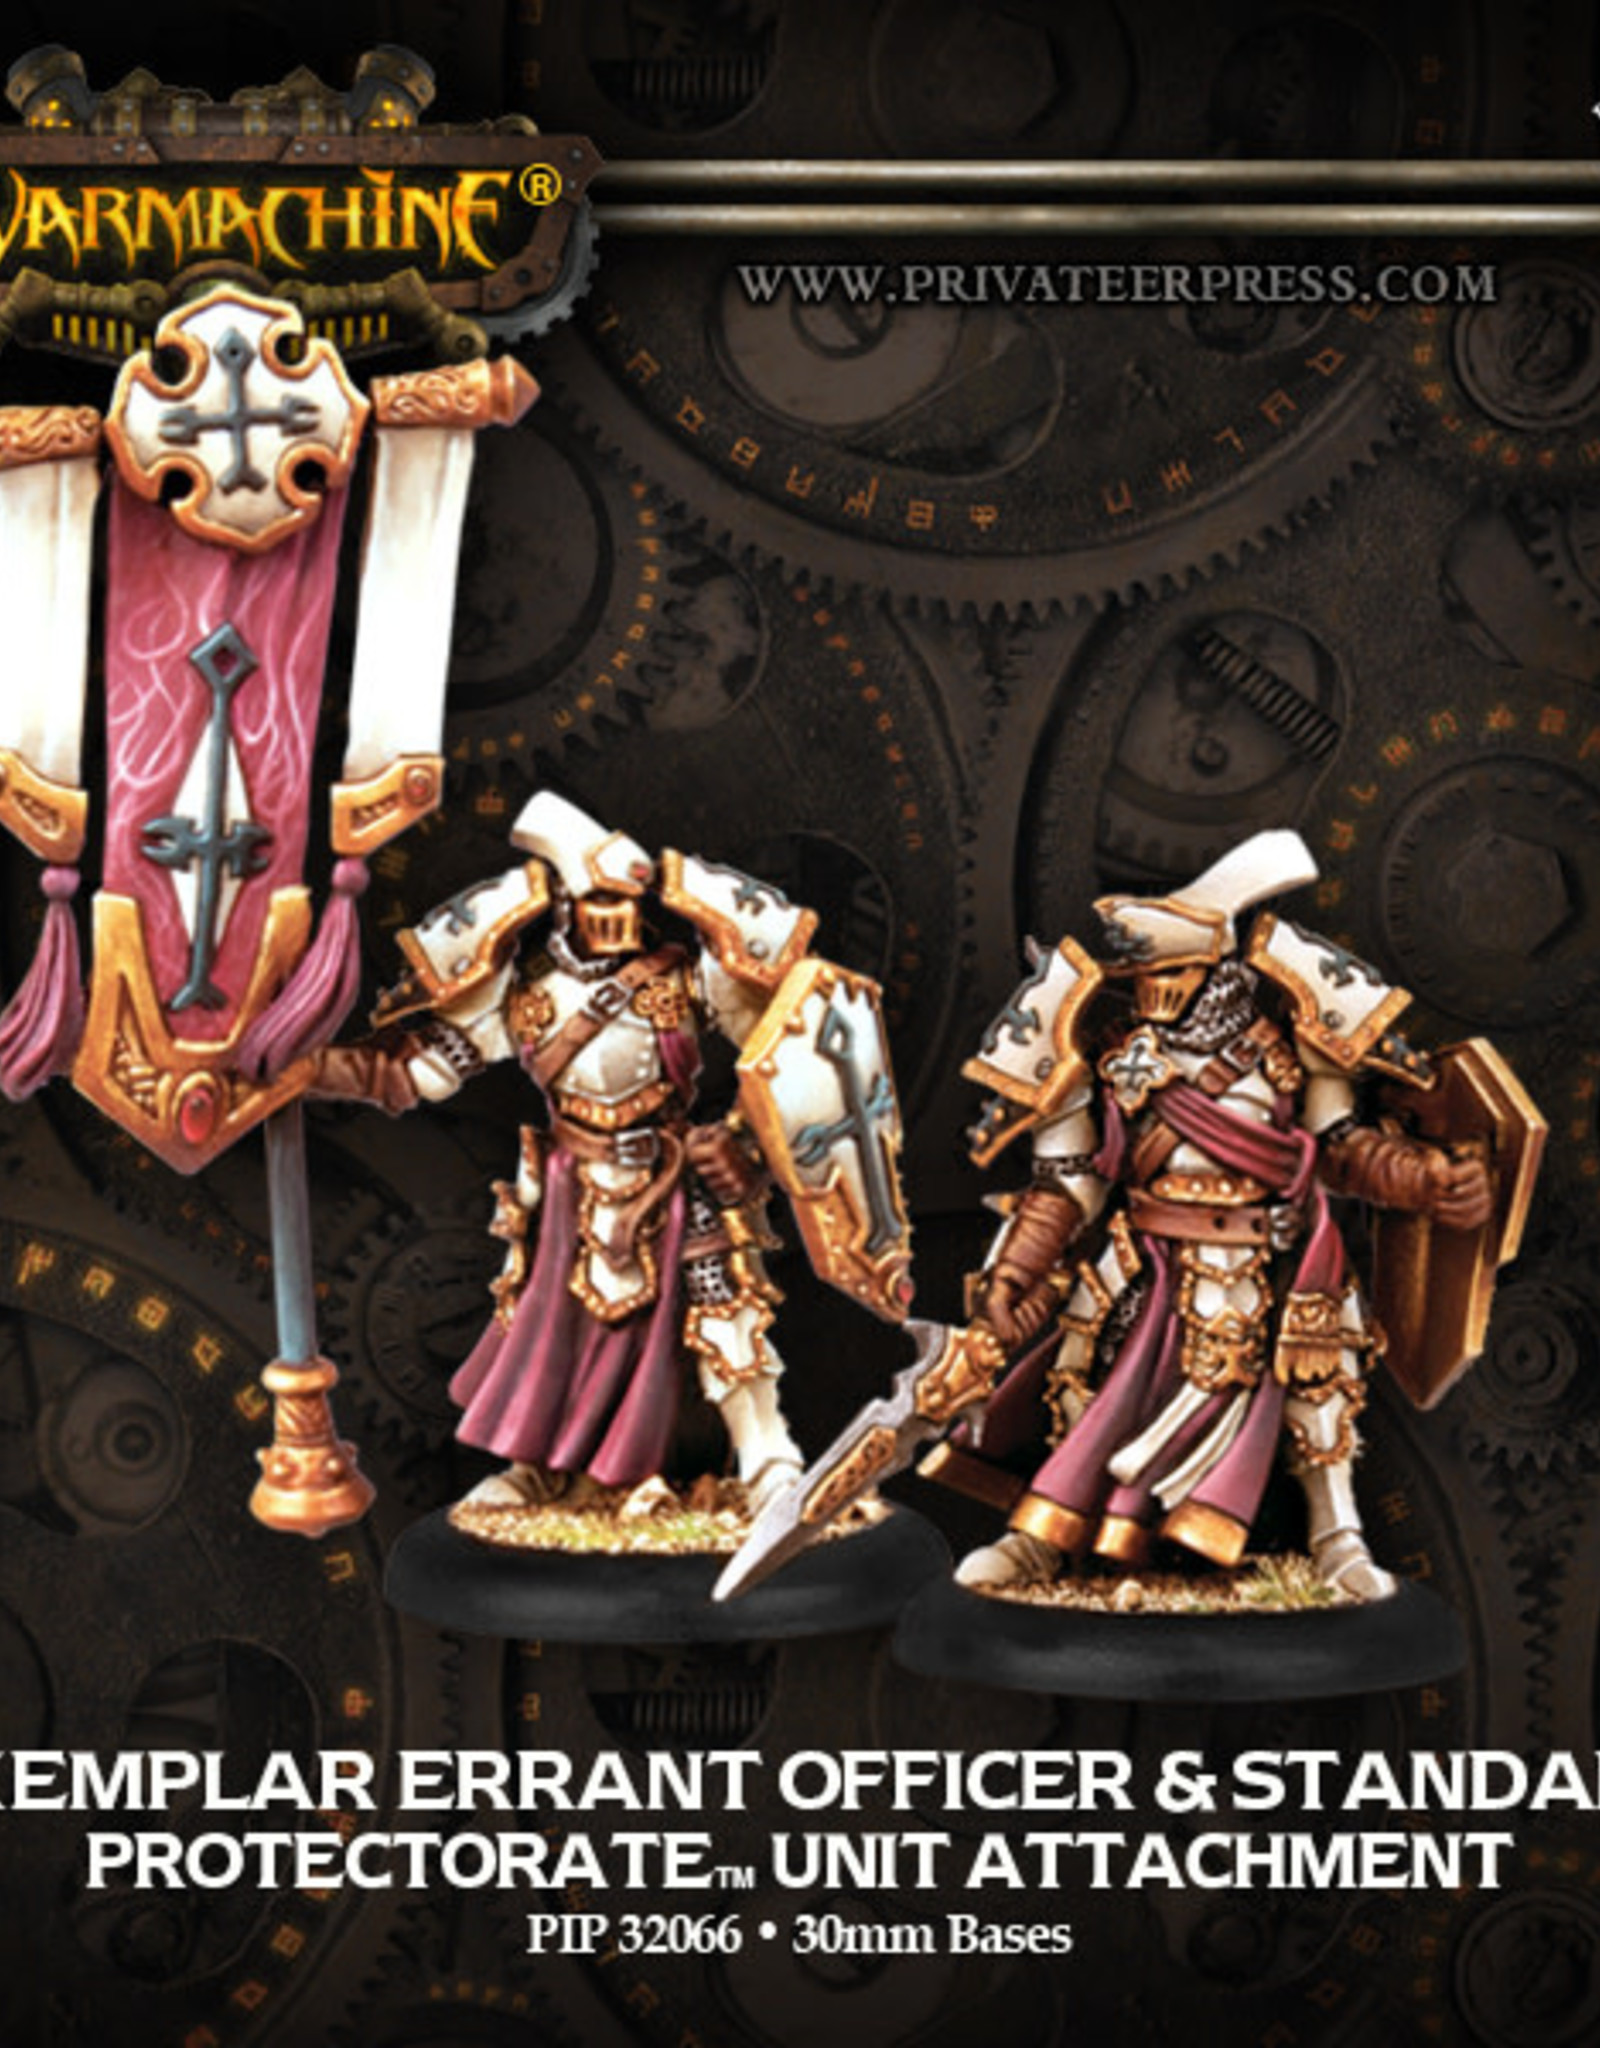 Warmachine Protectorate - Exemplar Errant Officer & standard